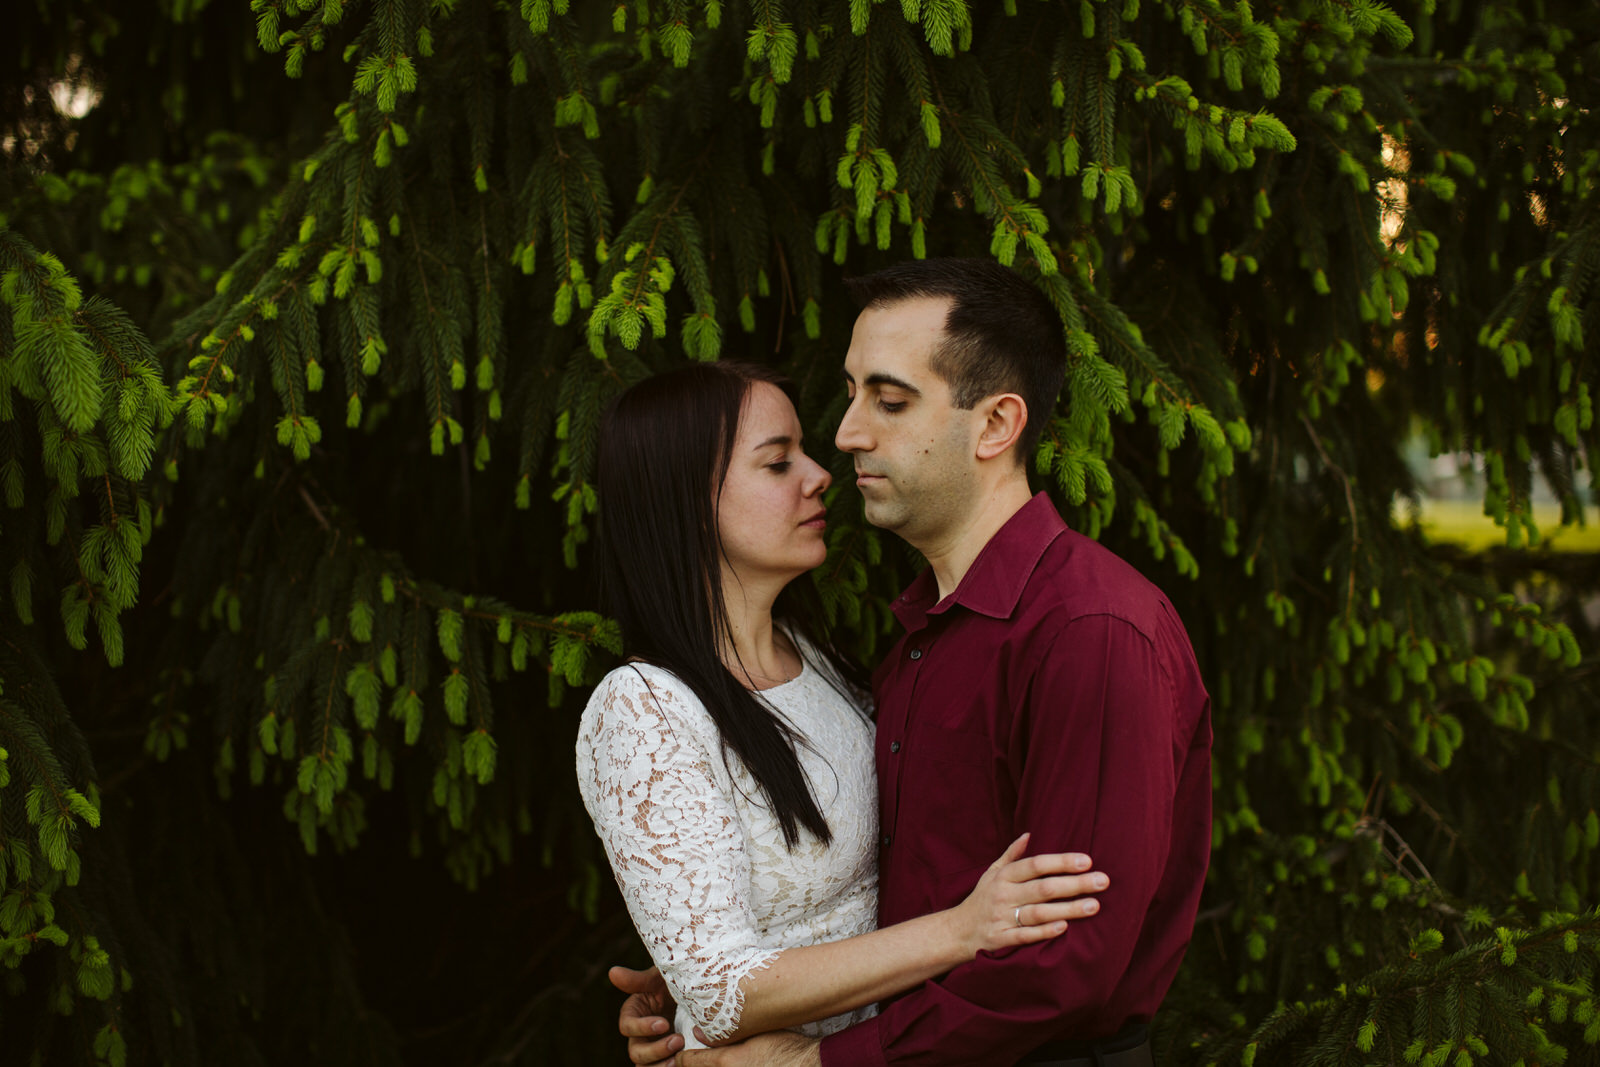 sunset-engagement-portraits-jersey-shore-asbury-park-tiny-house-photo-wedding-photographer-15.jpg